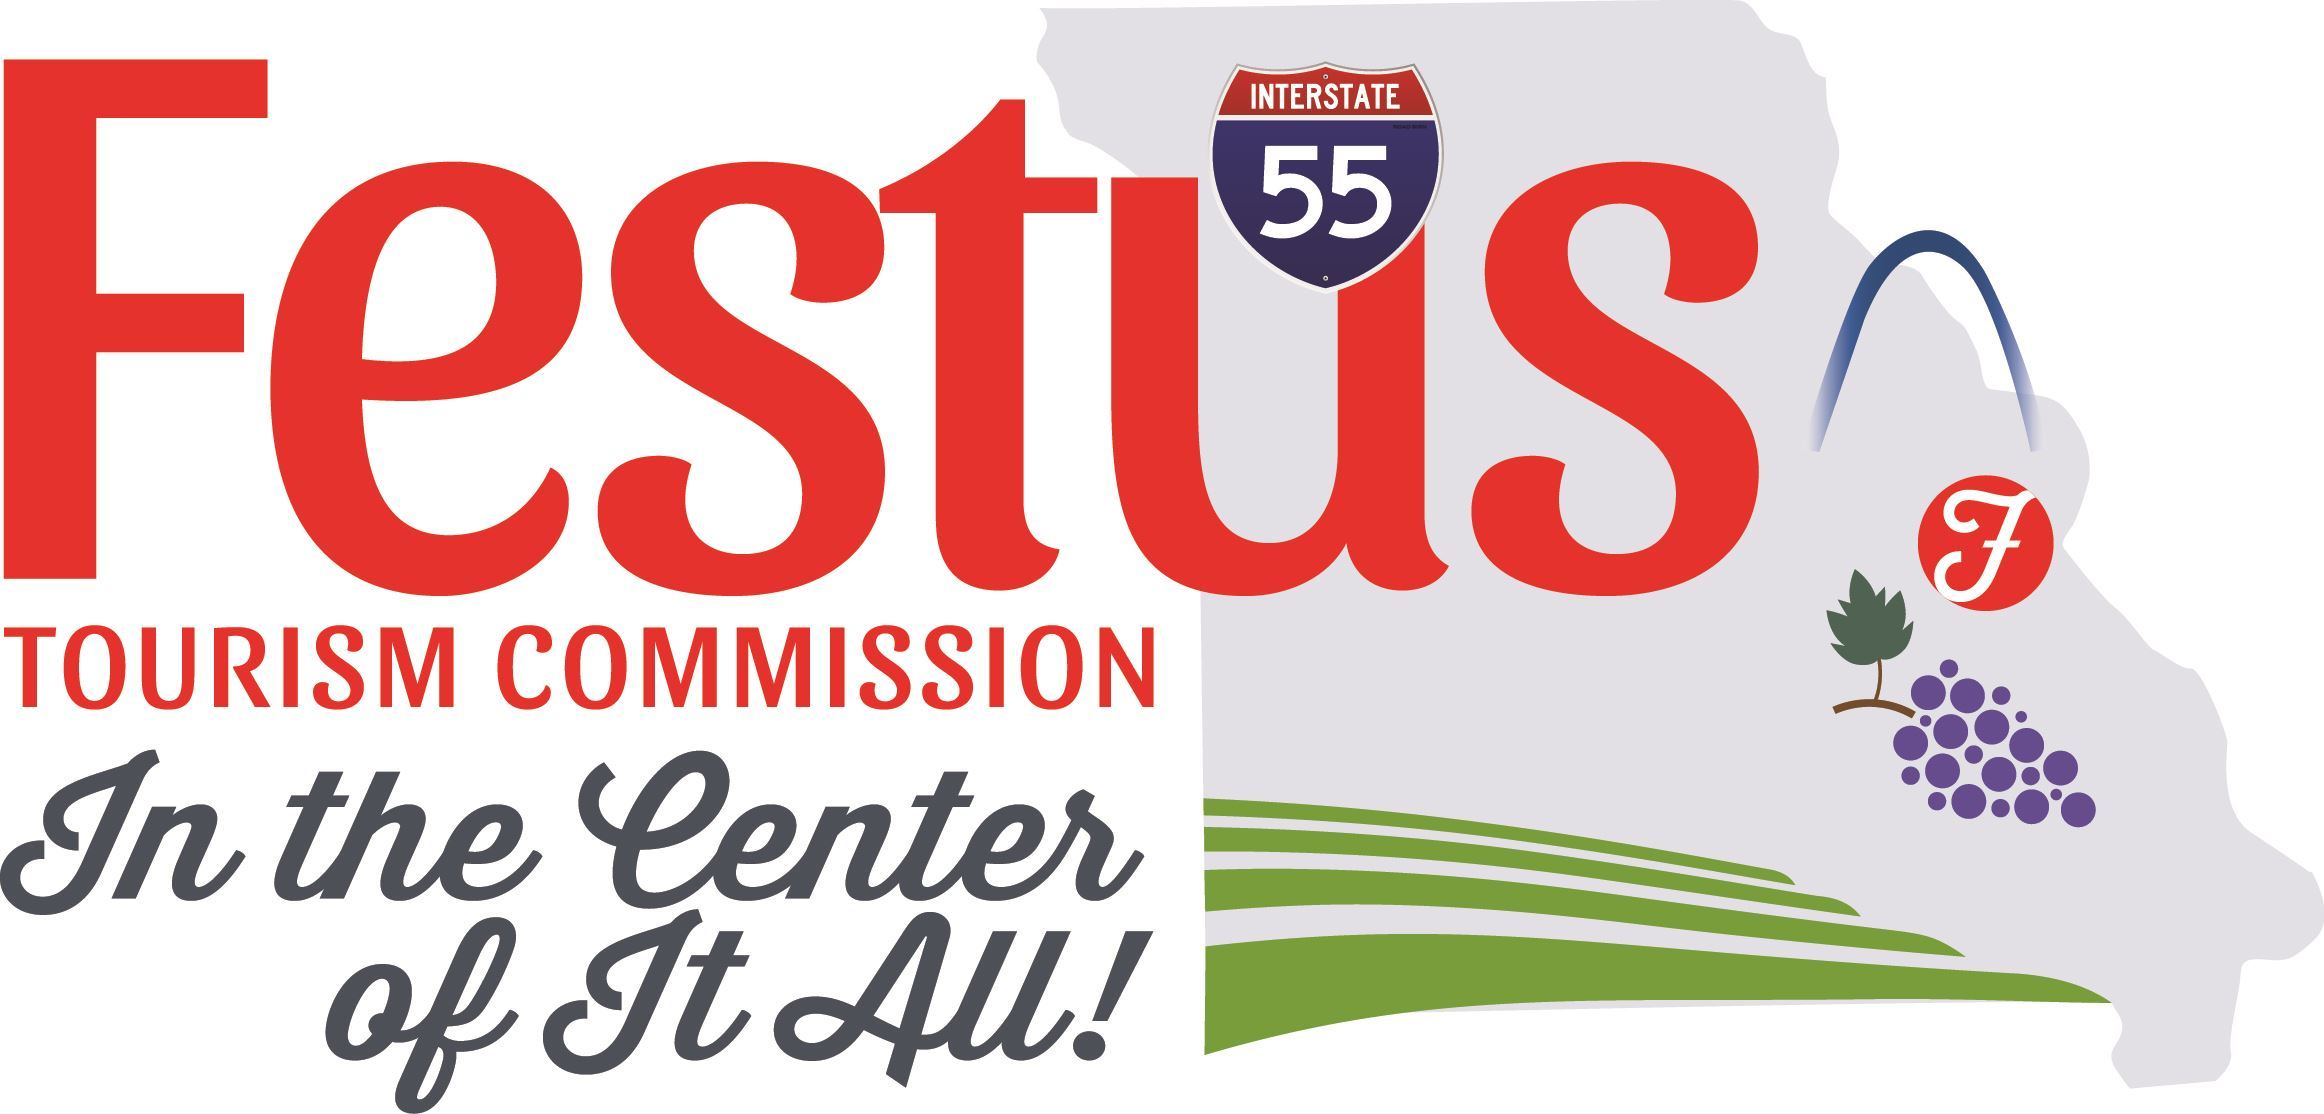 Image of the Festus Tourism Commission Logo